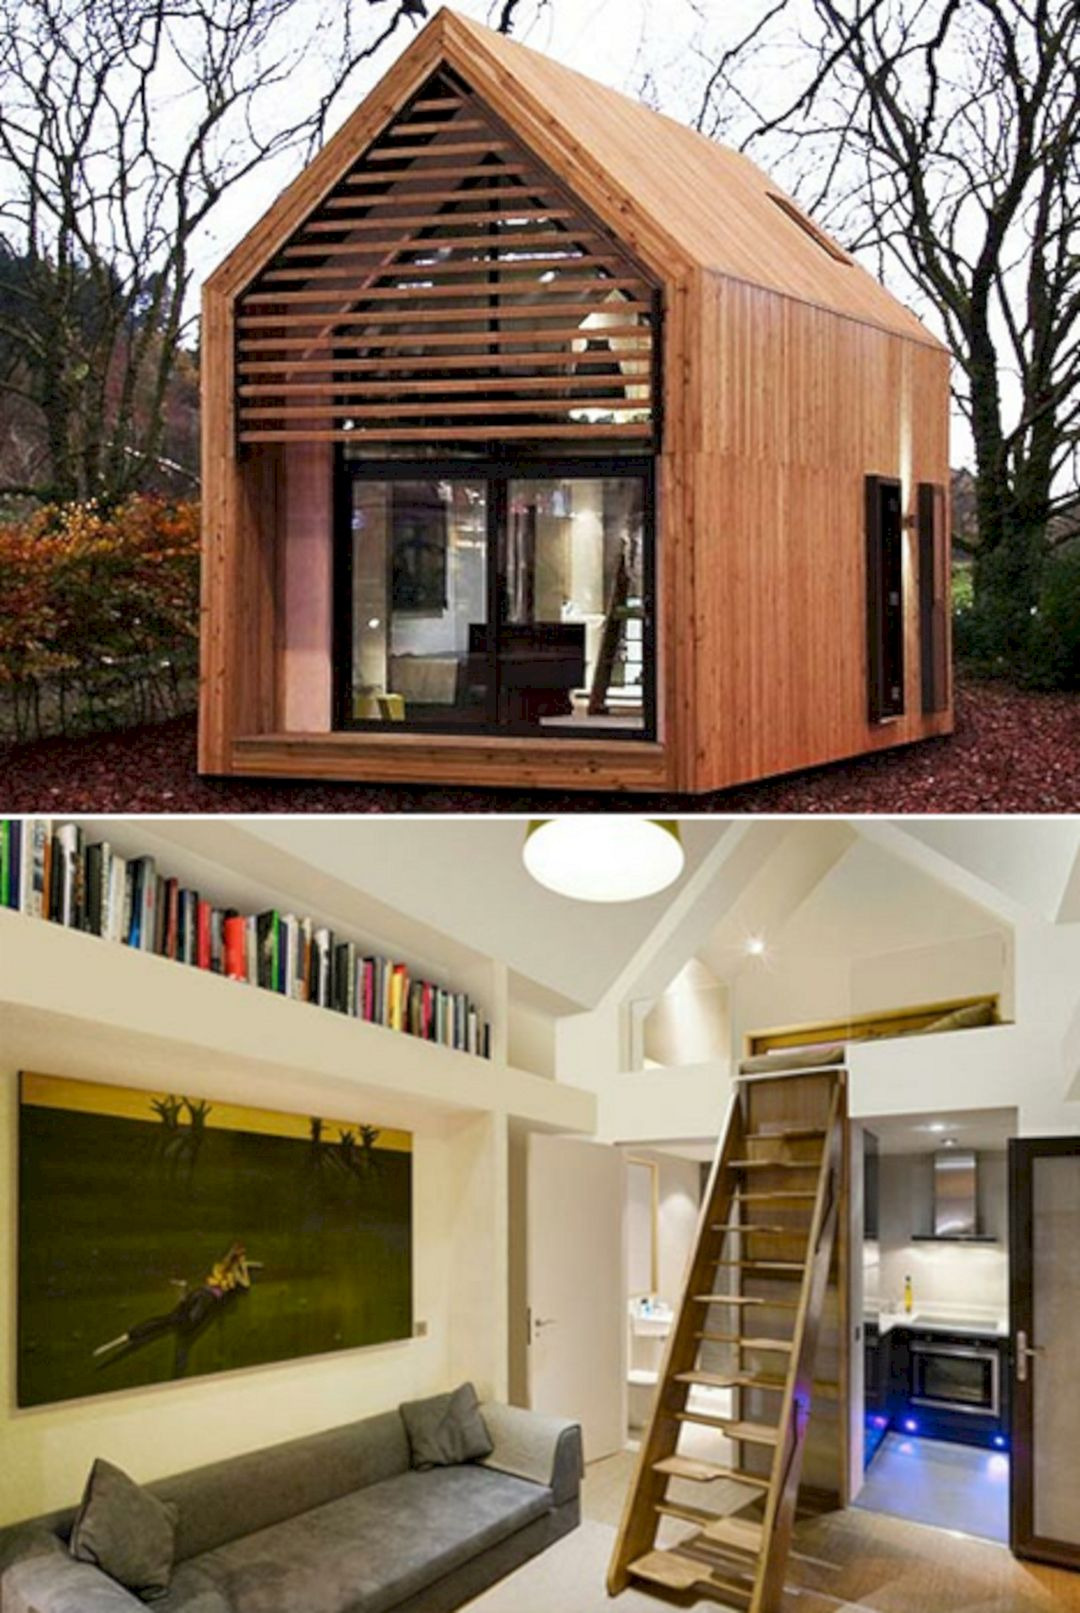 The Best Modern Tiny House Design Small Homes Inspirations No 23